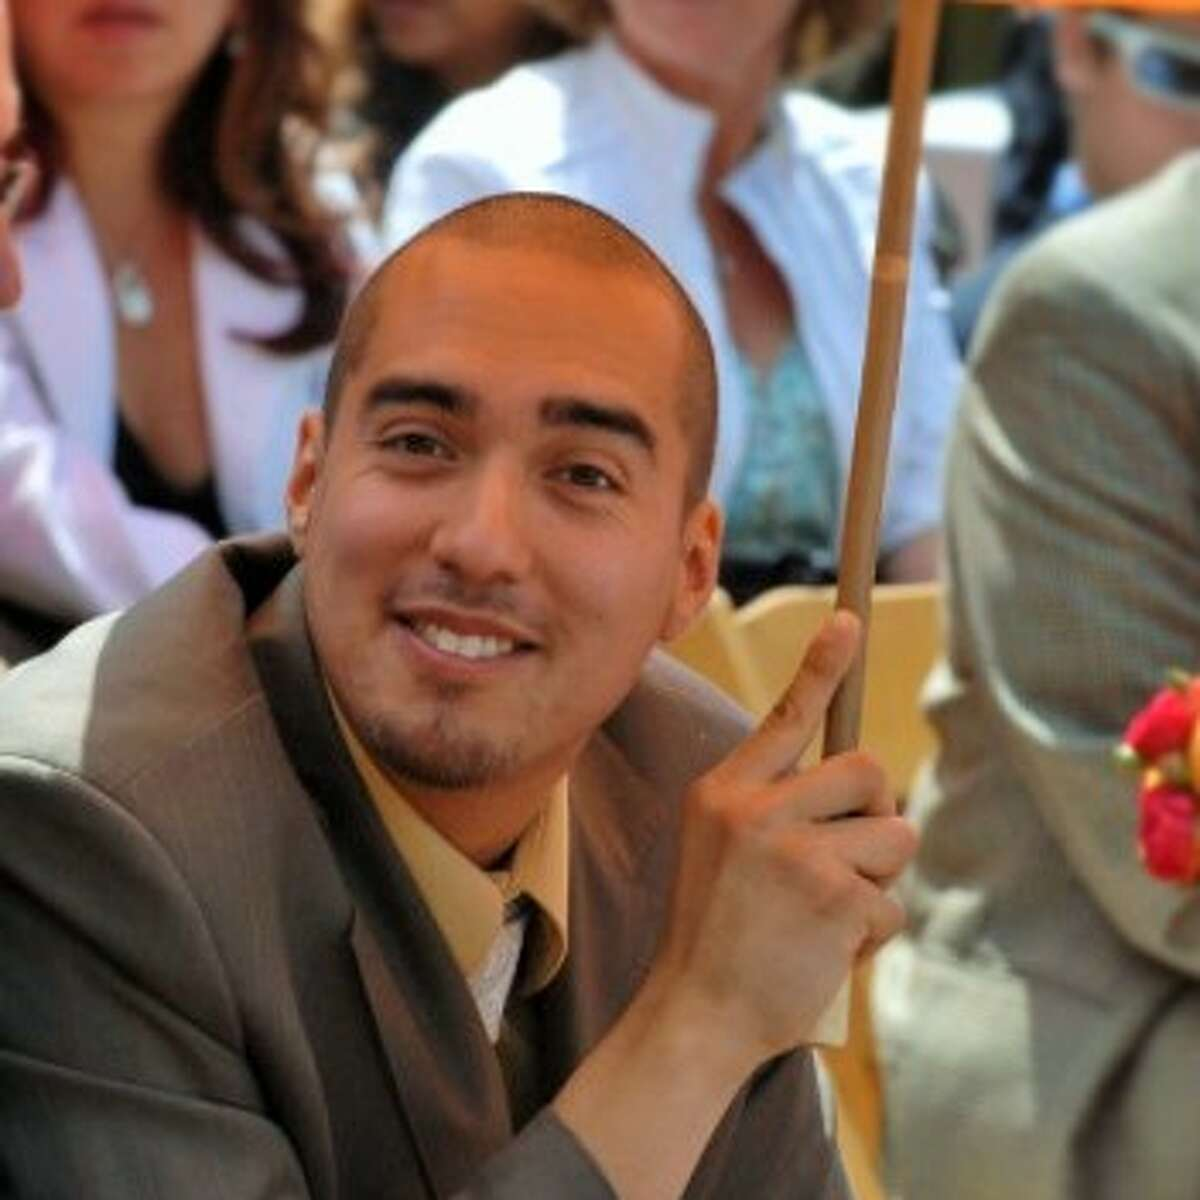 Alex Nieto was shot by police during an encounter in 2014.A federal jury found that four San Francisco police officers did not use excessive force when they shot and killed Nieto in Bernal Heights Park after they said he pointed what they believed to be a handgun at them.